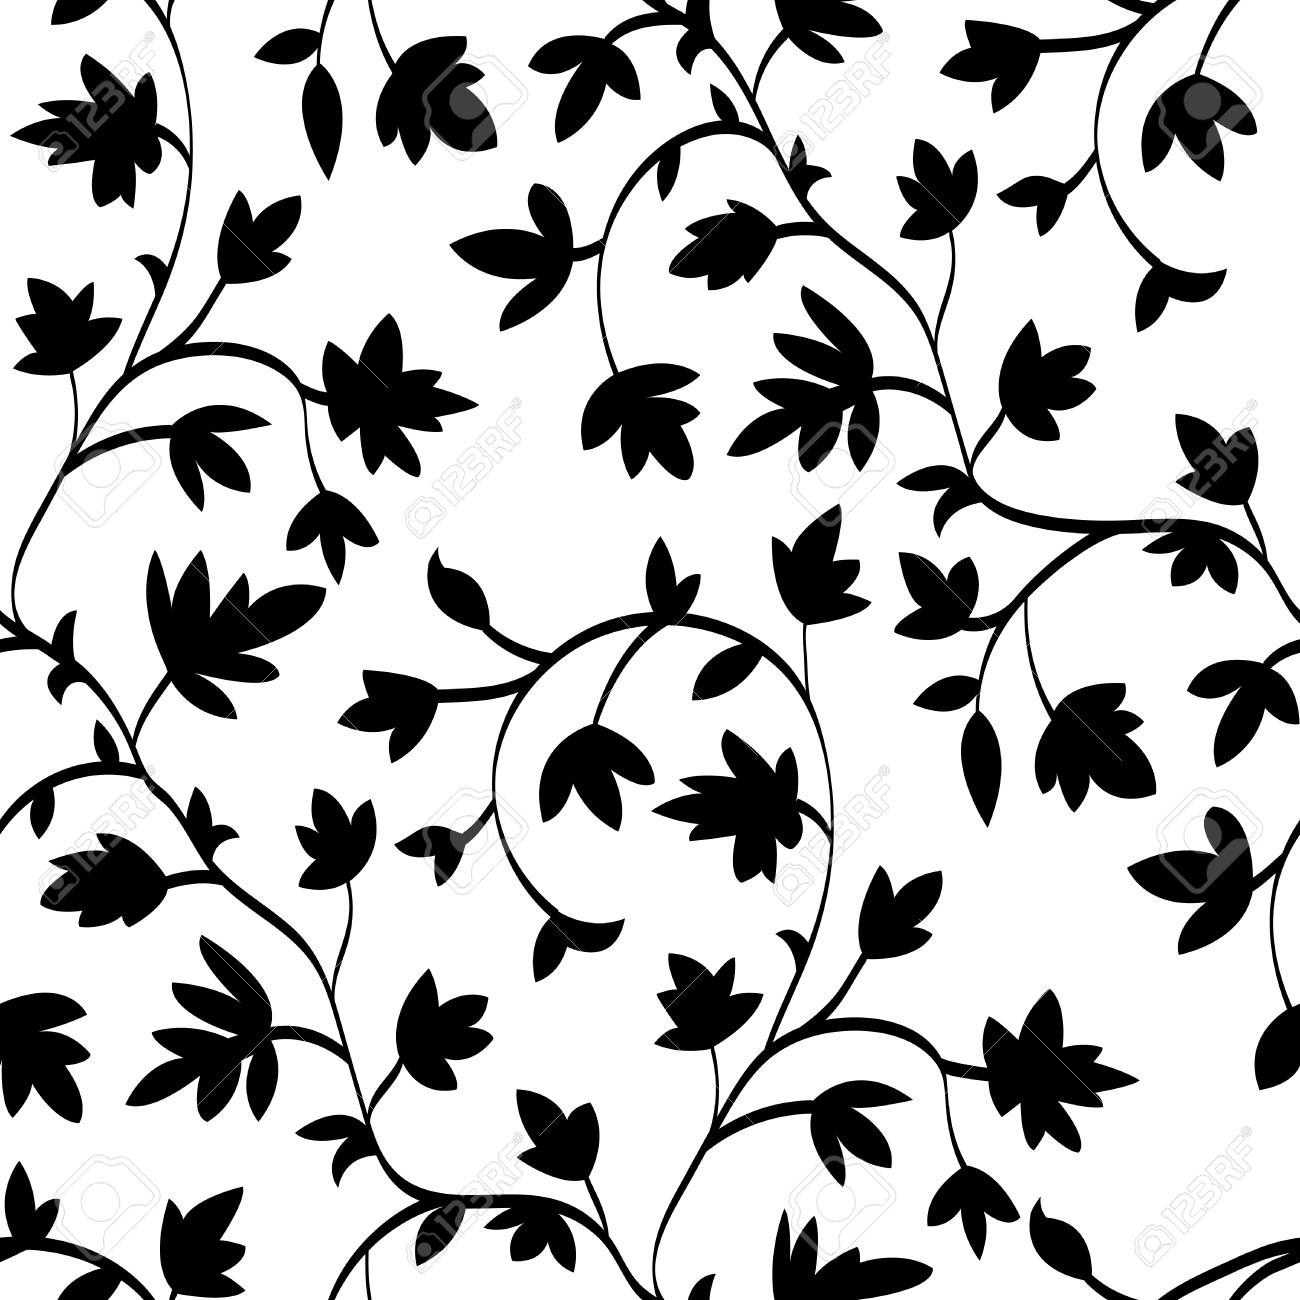 Seamless Floral Pattern With Branches And Leaves Abstract Texture